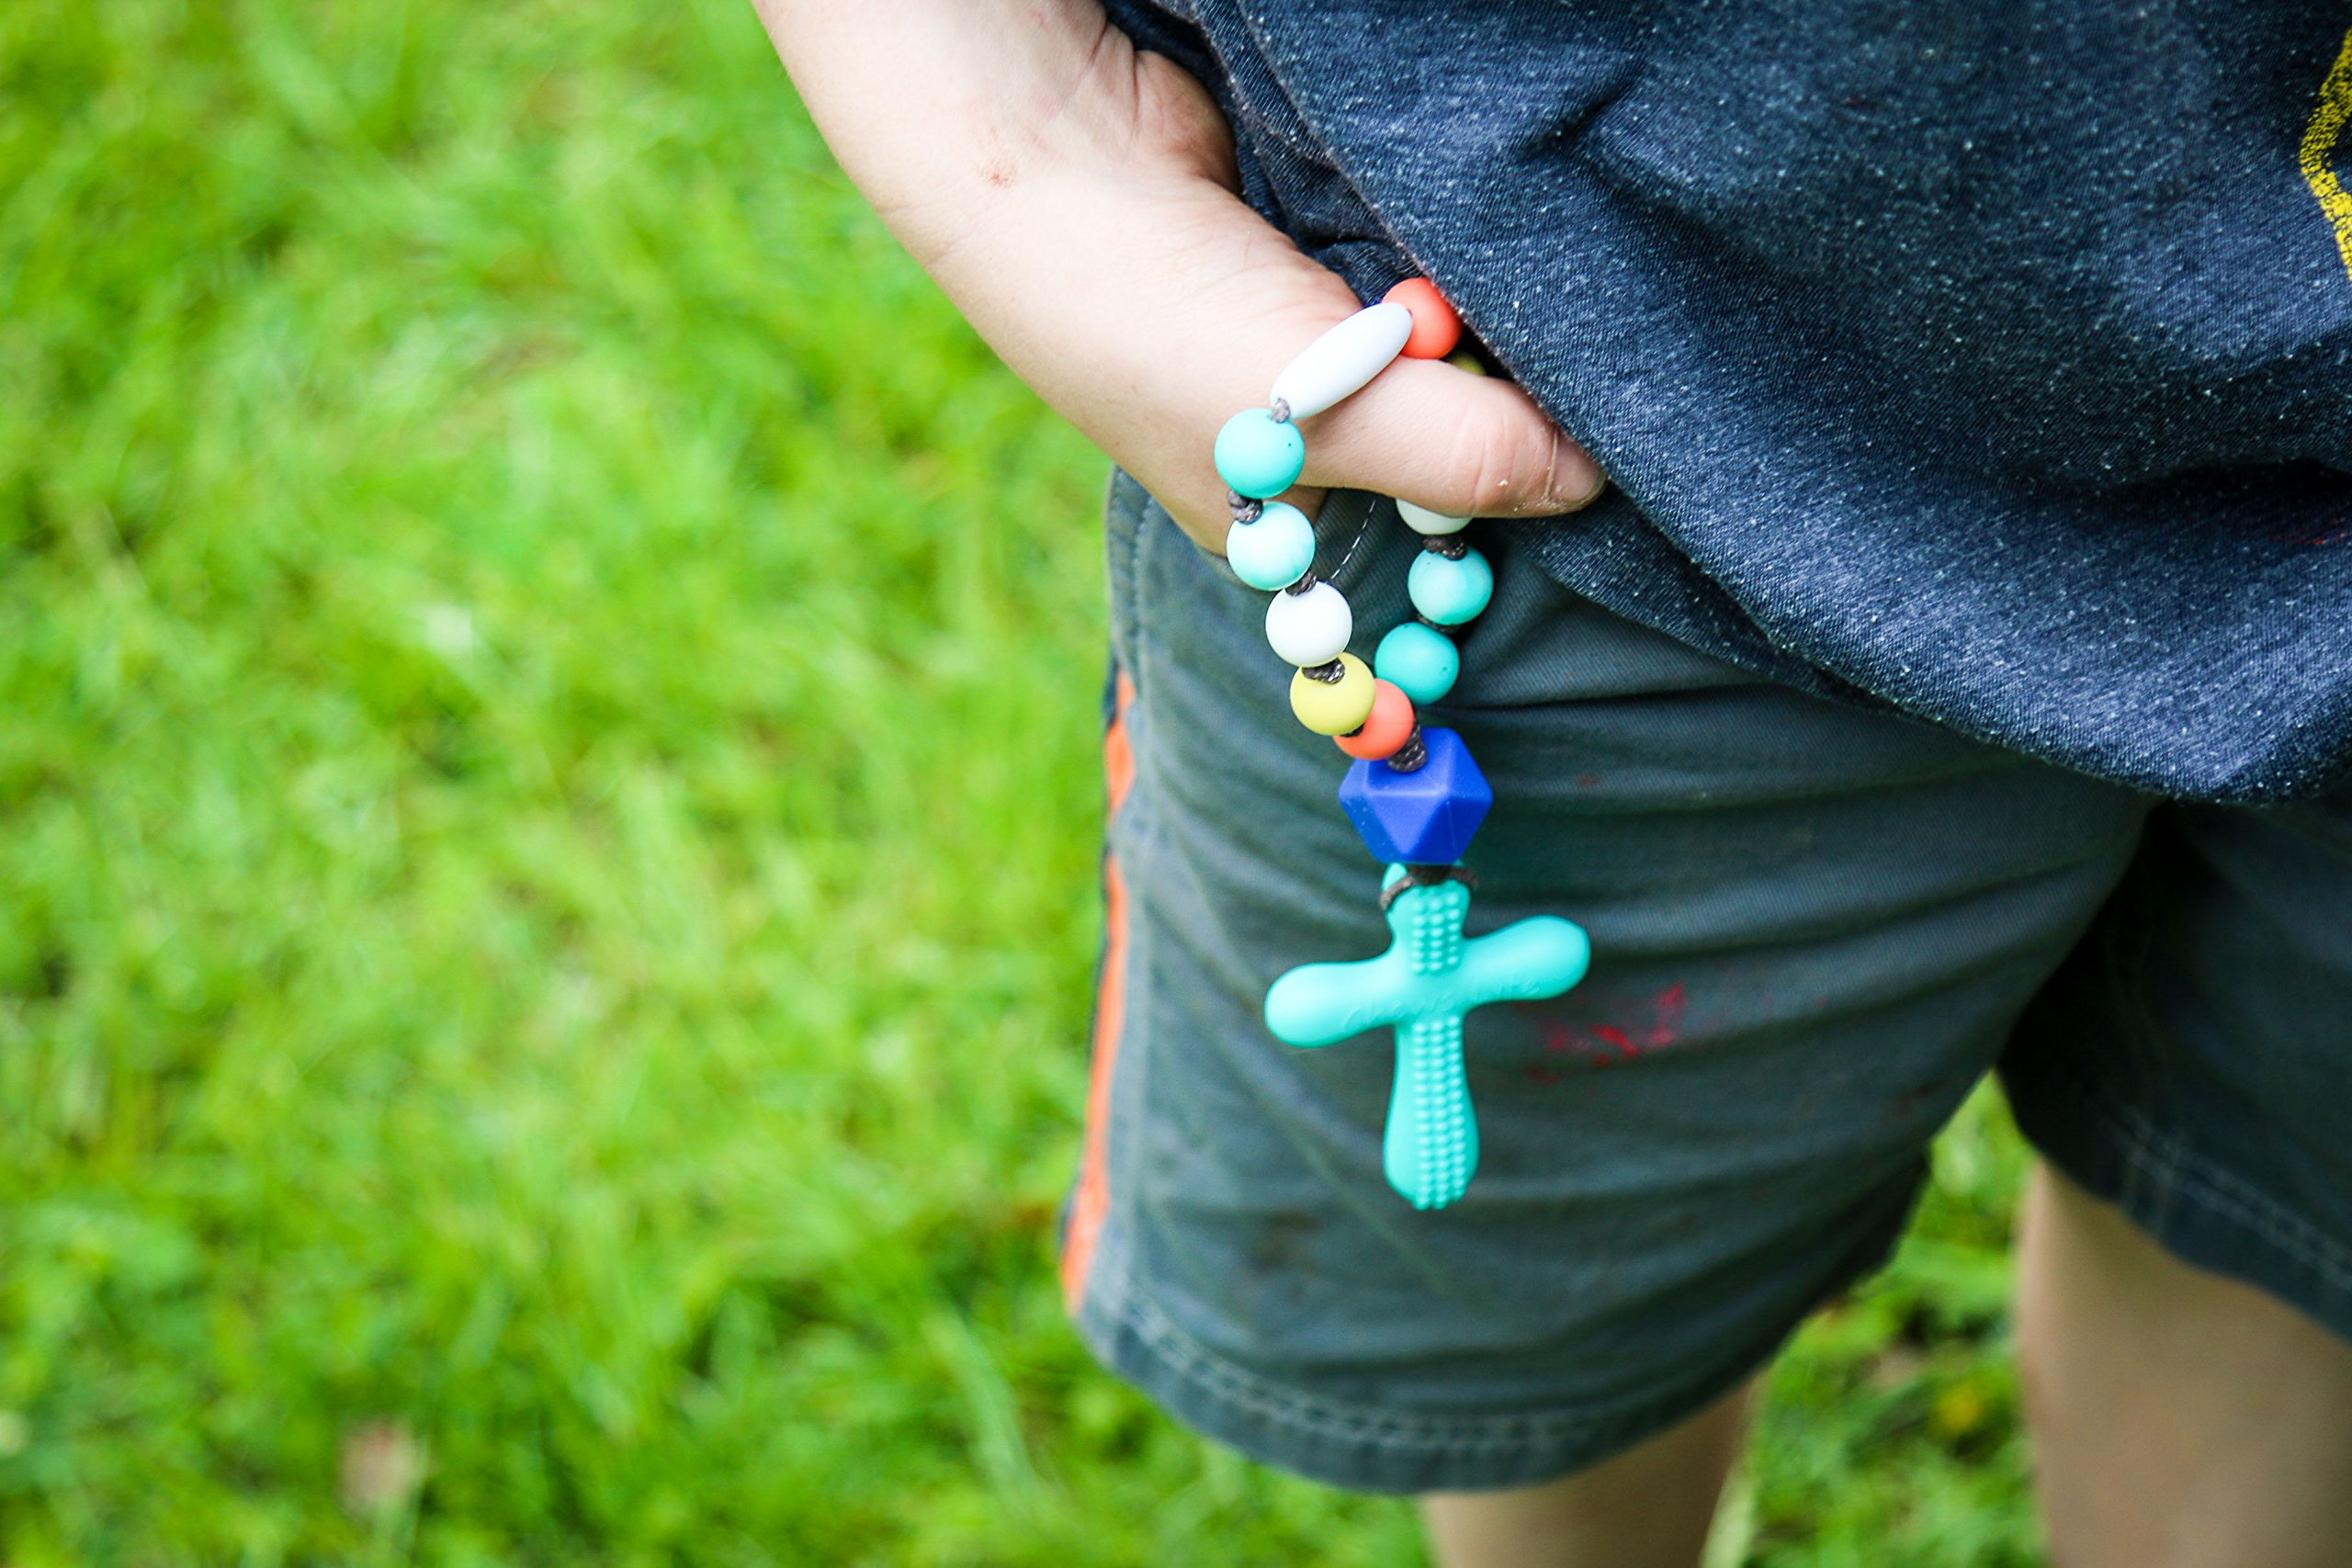 Chews Life Decade Rosary | Little One Decade RosarySilicone Teething Rosary | Boys' or Girls' Baptism or Mass Toy by Chews Life (Image #3)